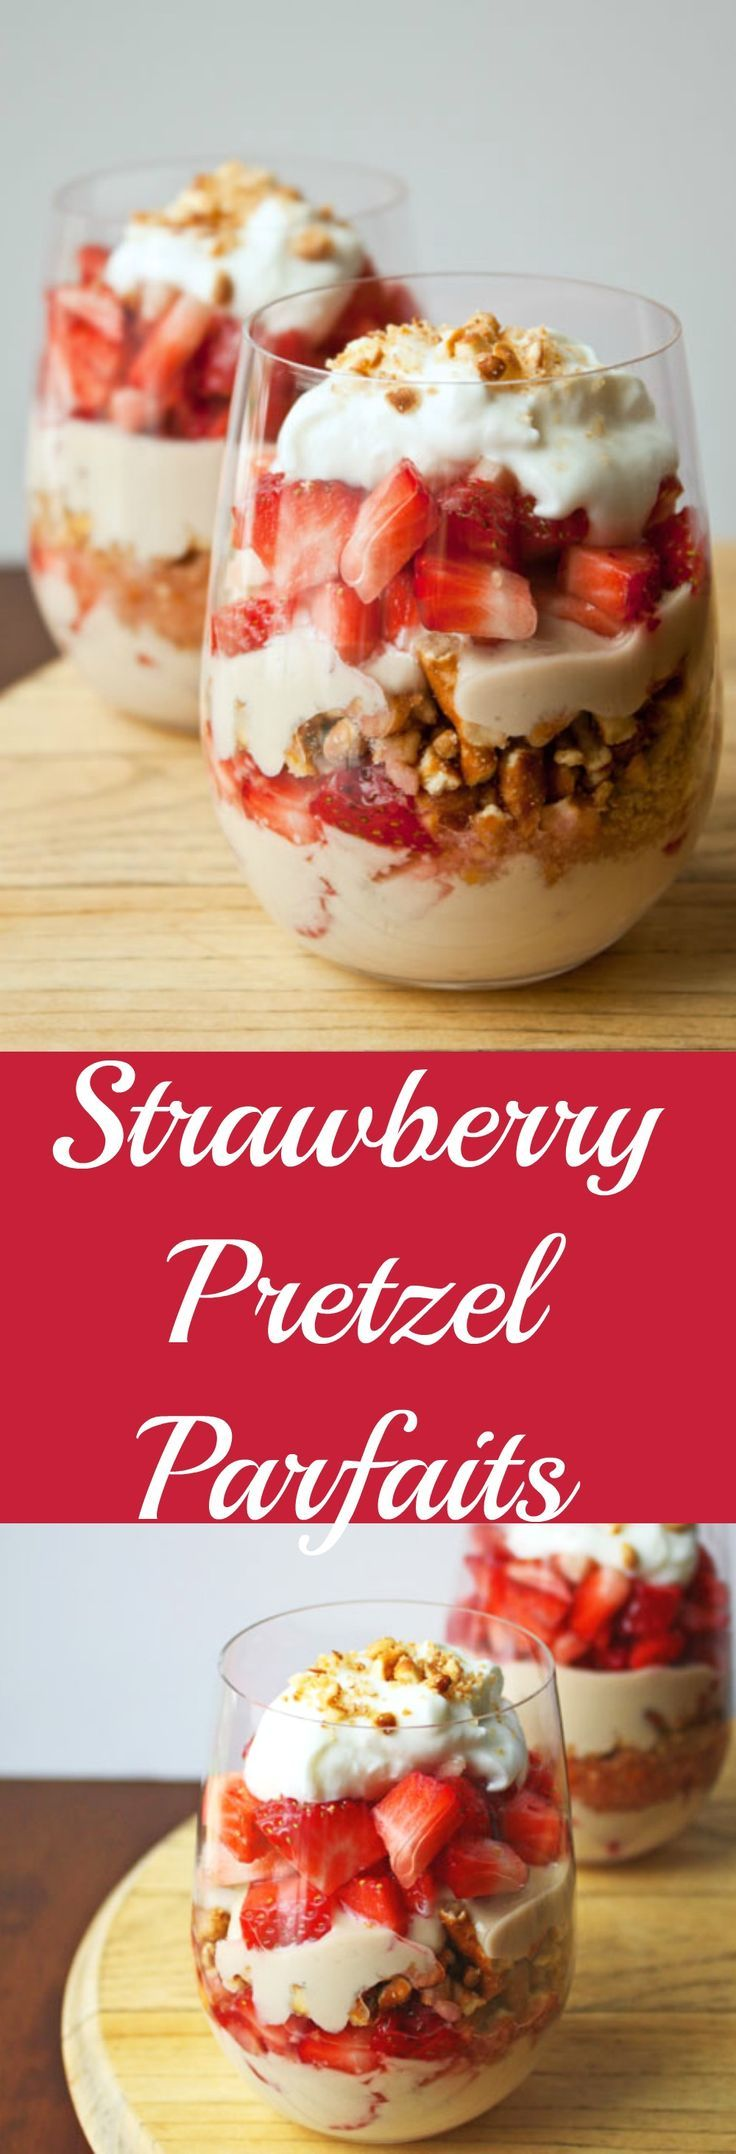 Visita: https://clairessugar.blogspot.com.es/ para recetas paso a paso con vídeos divertidos y fáciles!  ^^ Strawberry Pretzel Salad in parfait form. Serves two